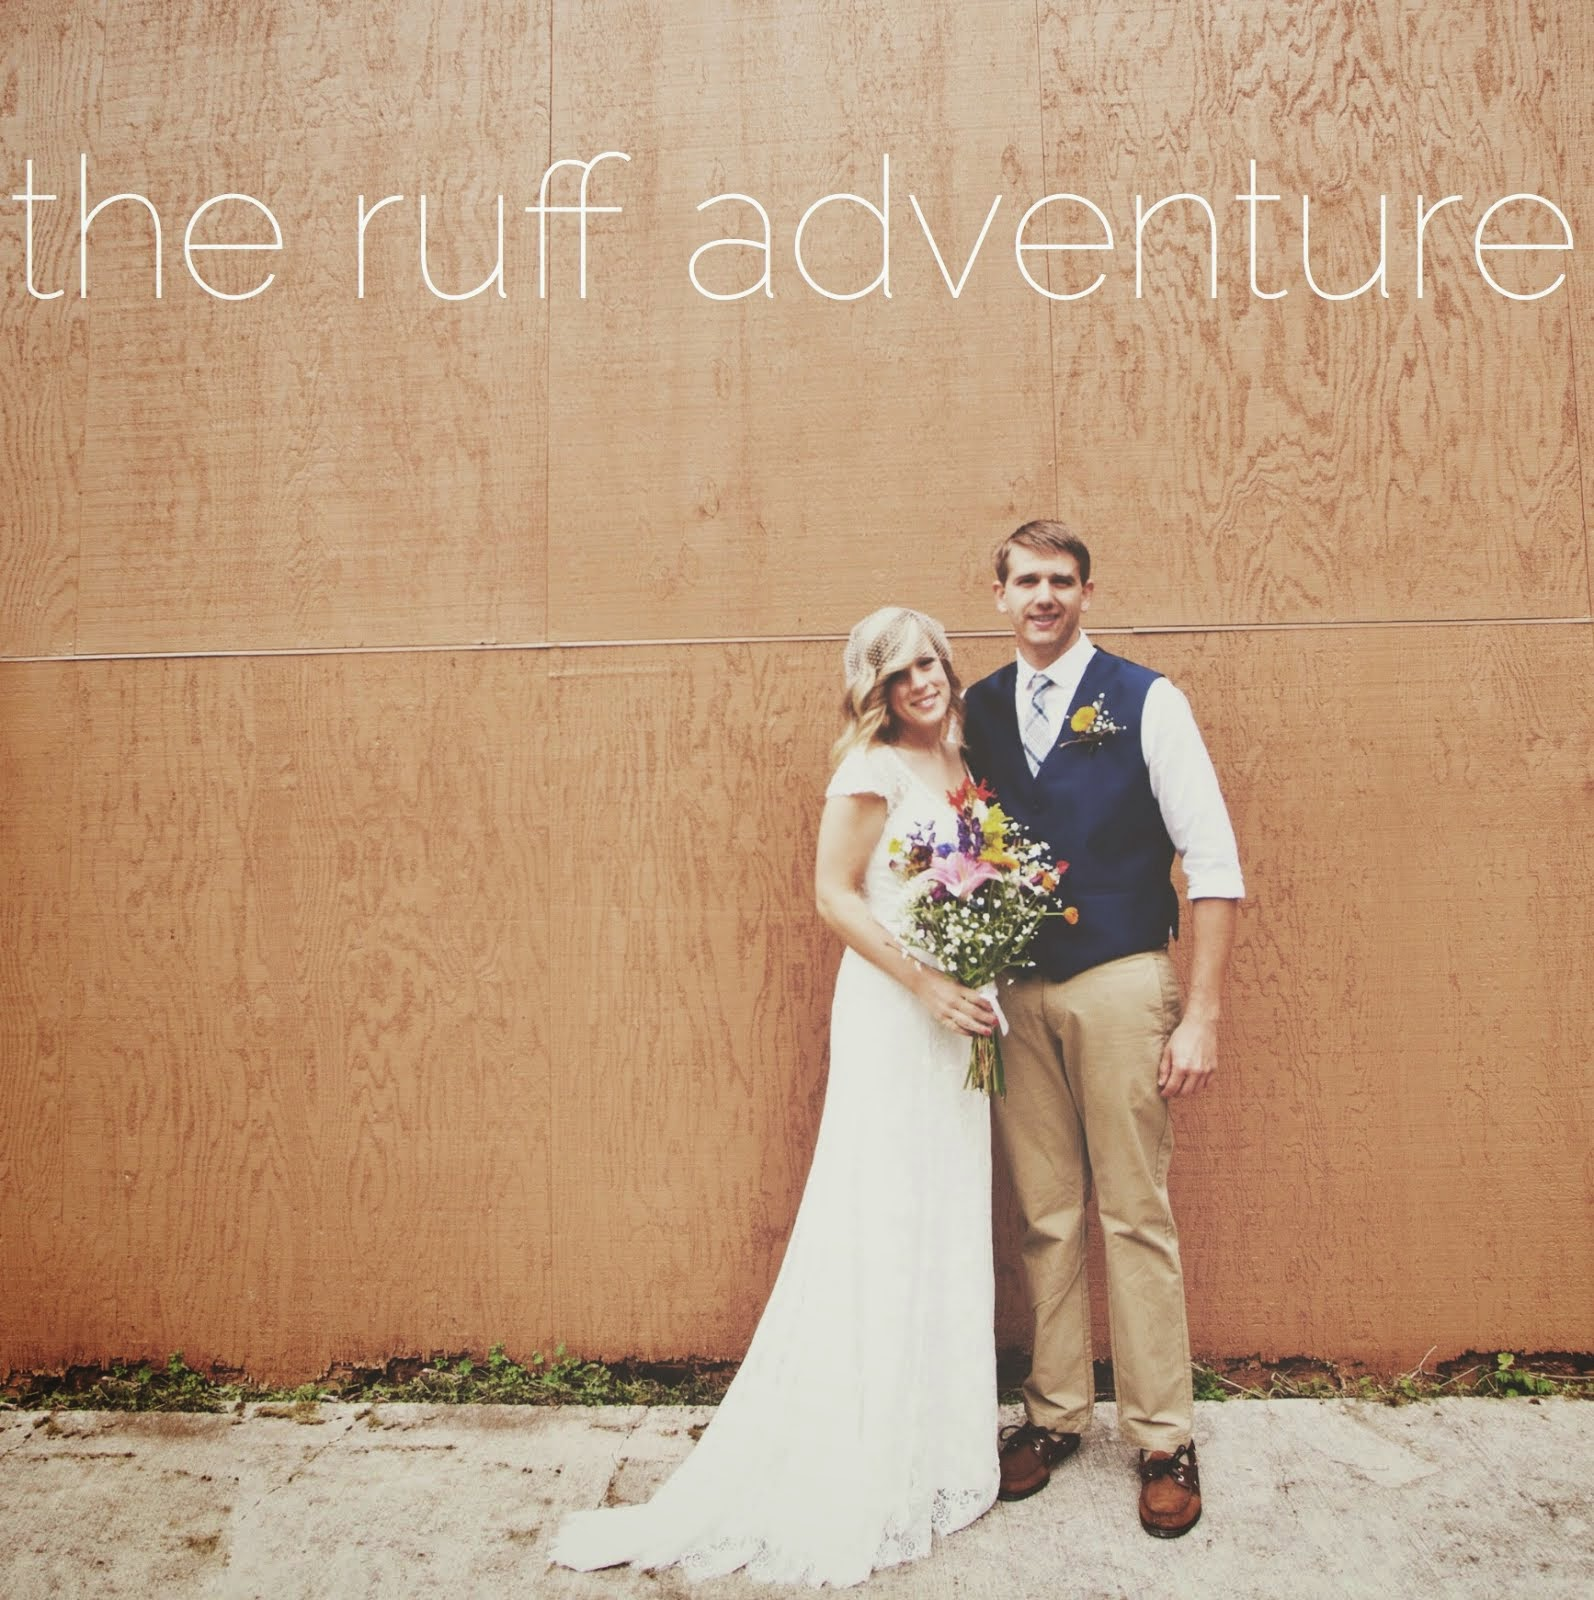 The Ruff Adventure